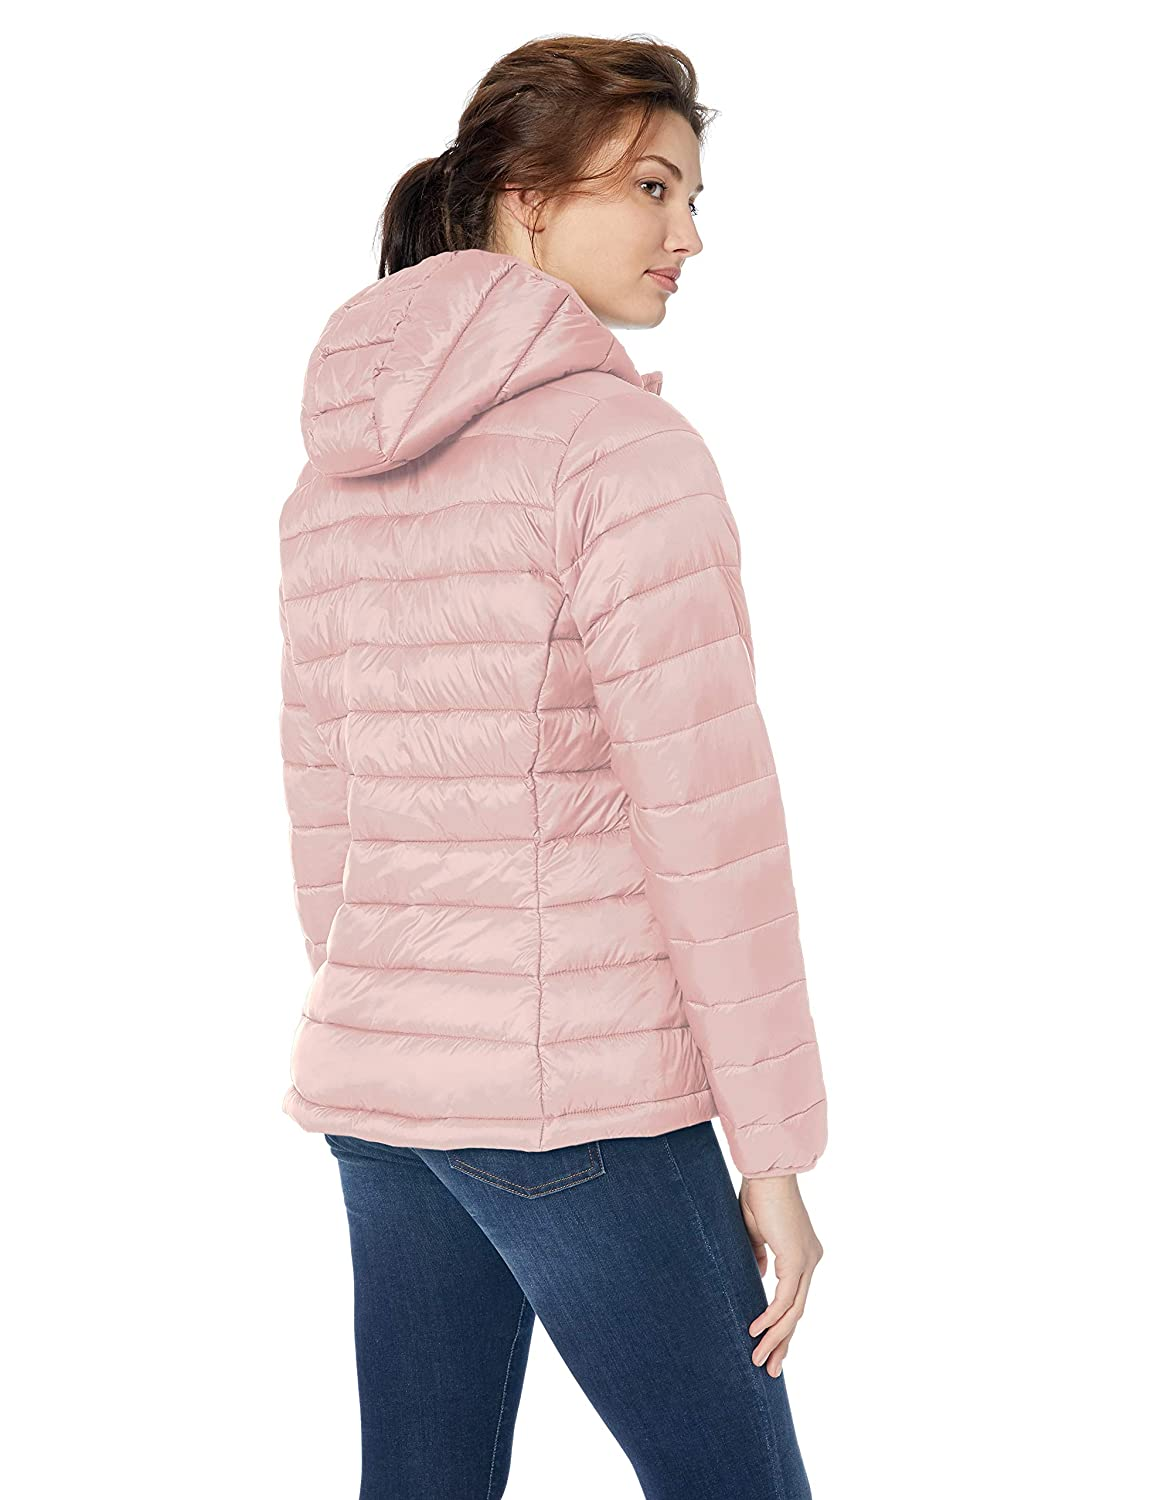 Essentials Lightweight Water-Resistant Packable Hooded Puffer Jacket Giubbotto